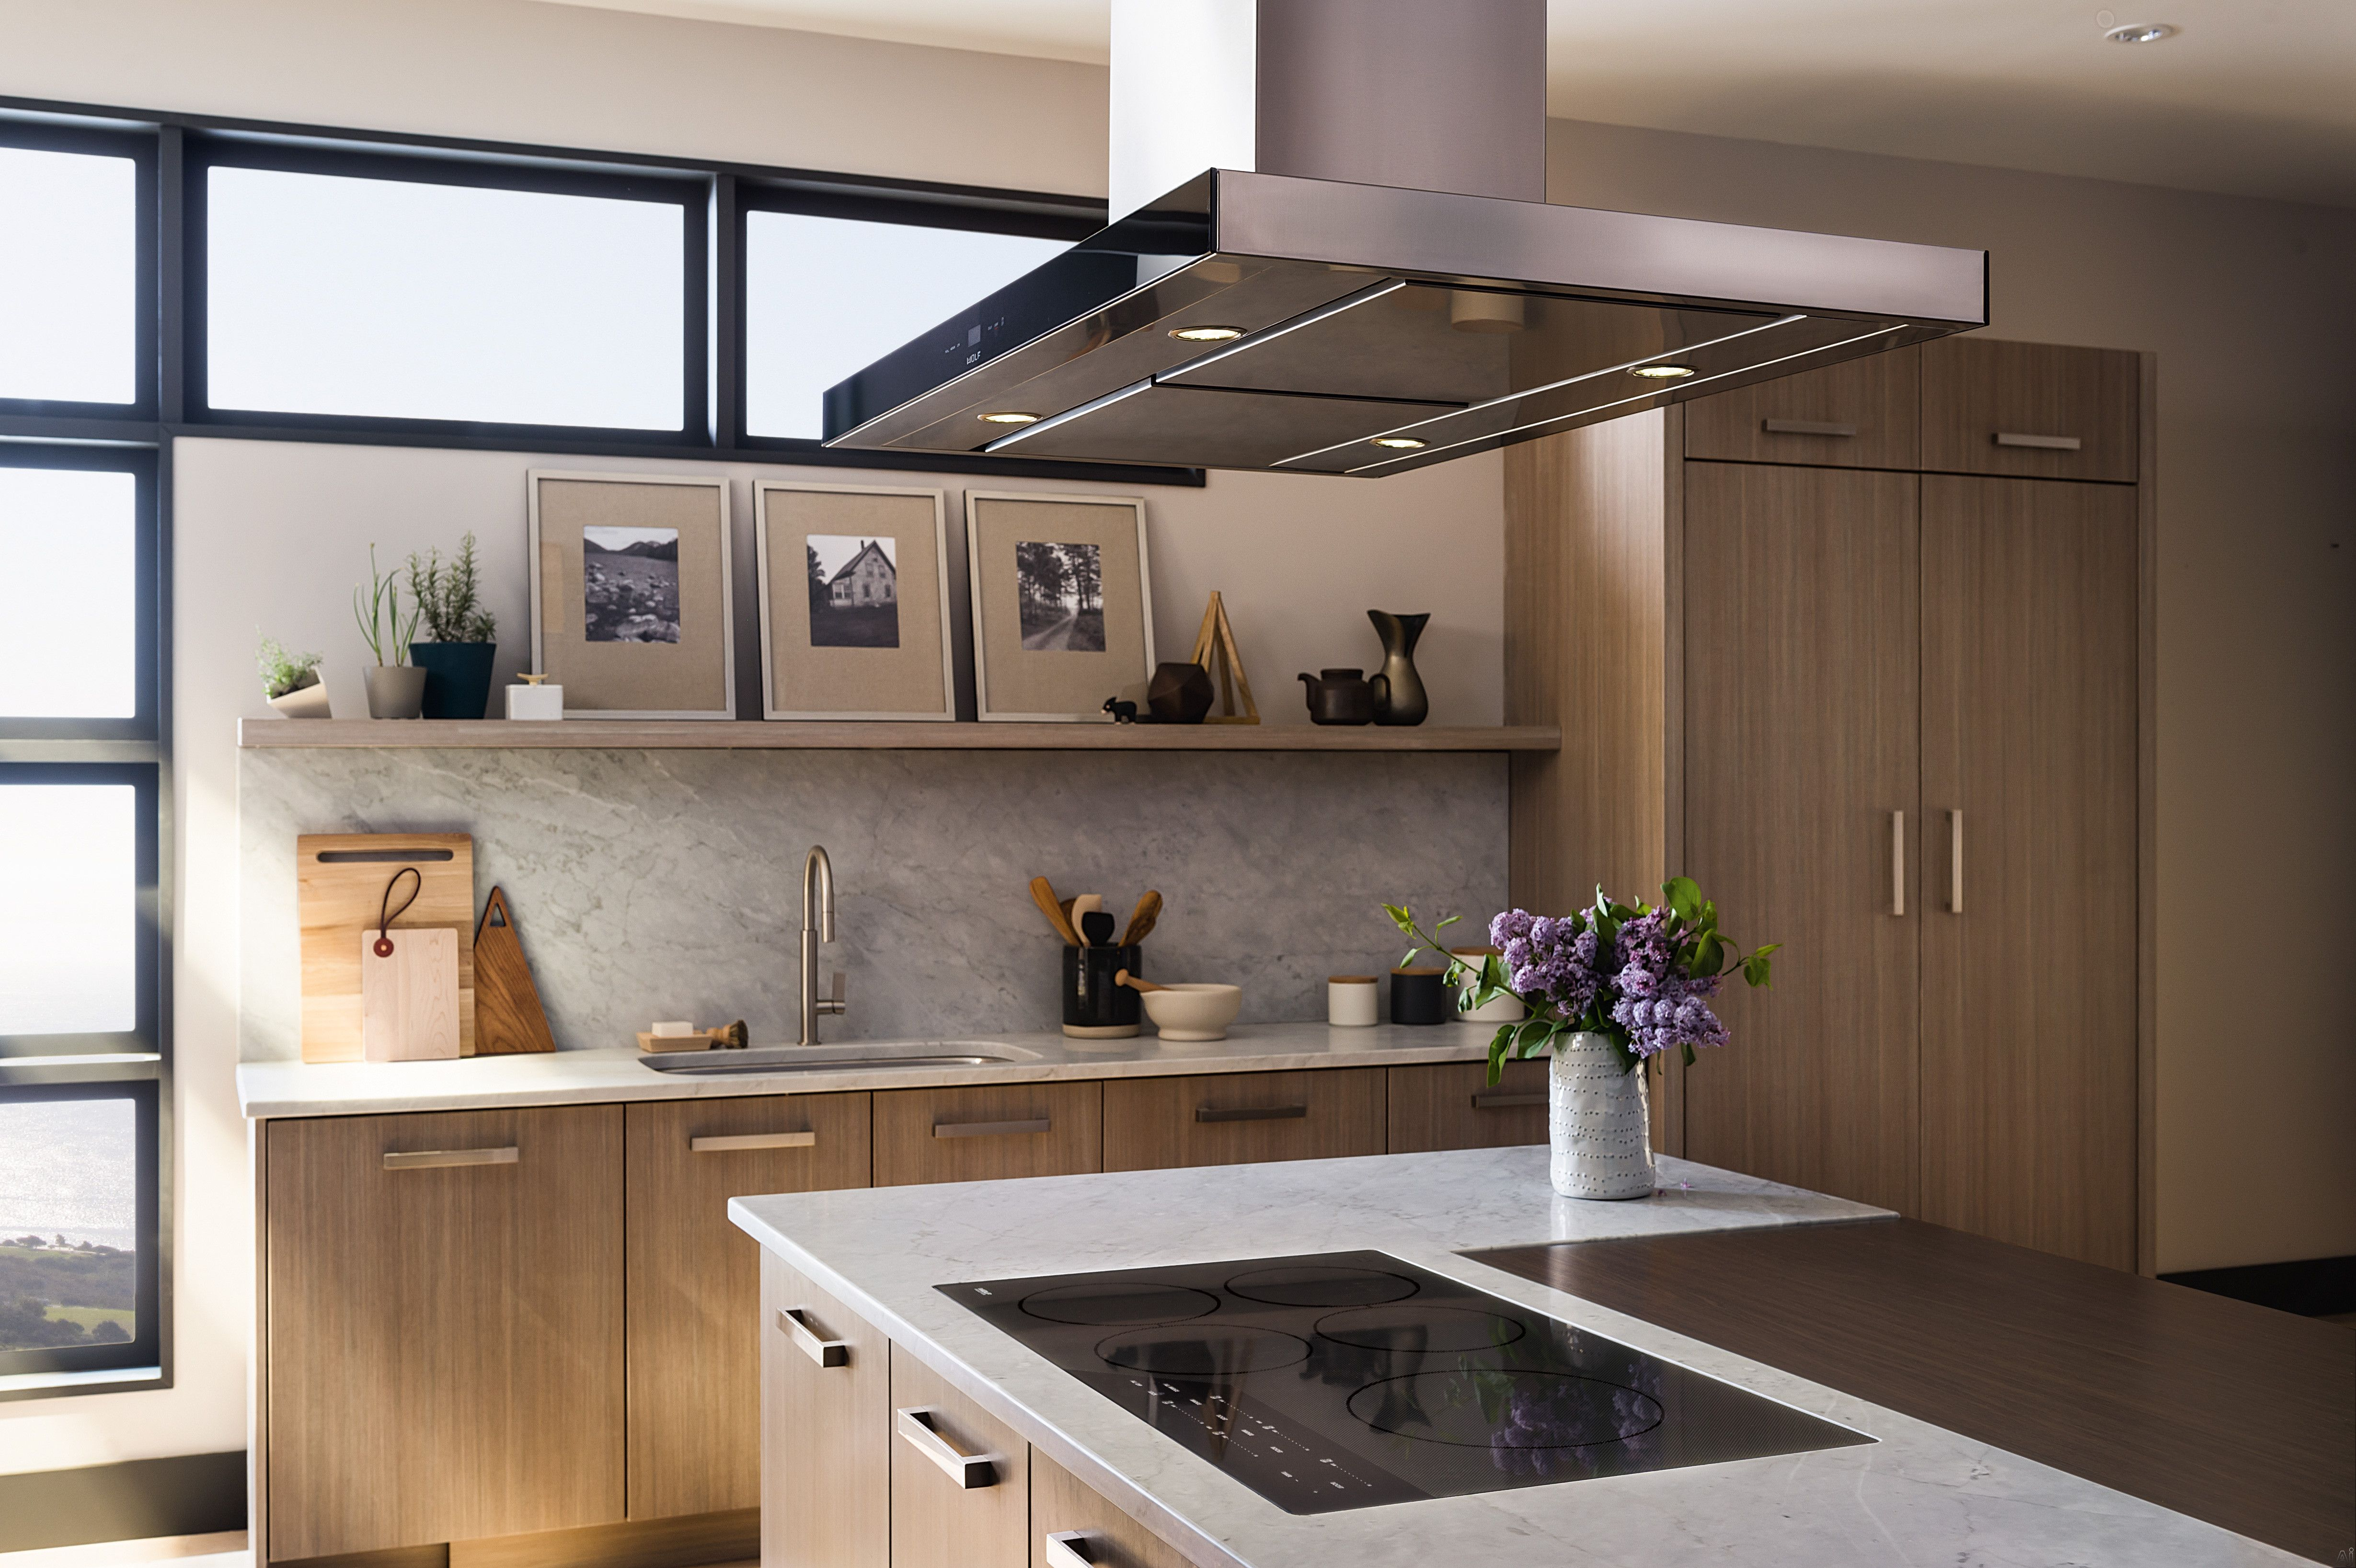 5 Induction Cooktops To Consider For Your Kitchen Kitchen Island With Cooktop Elegant Kitchen Design Kitchen Hood Design